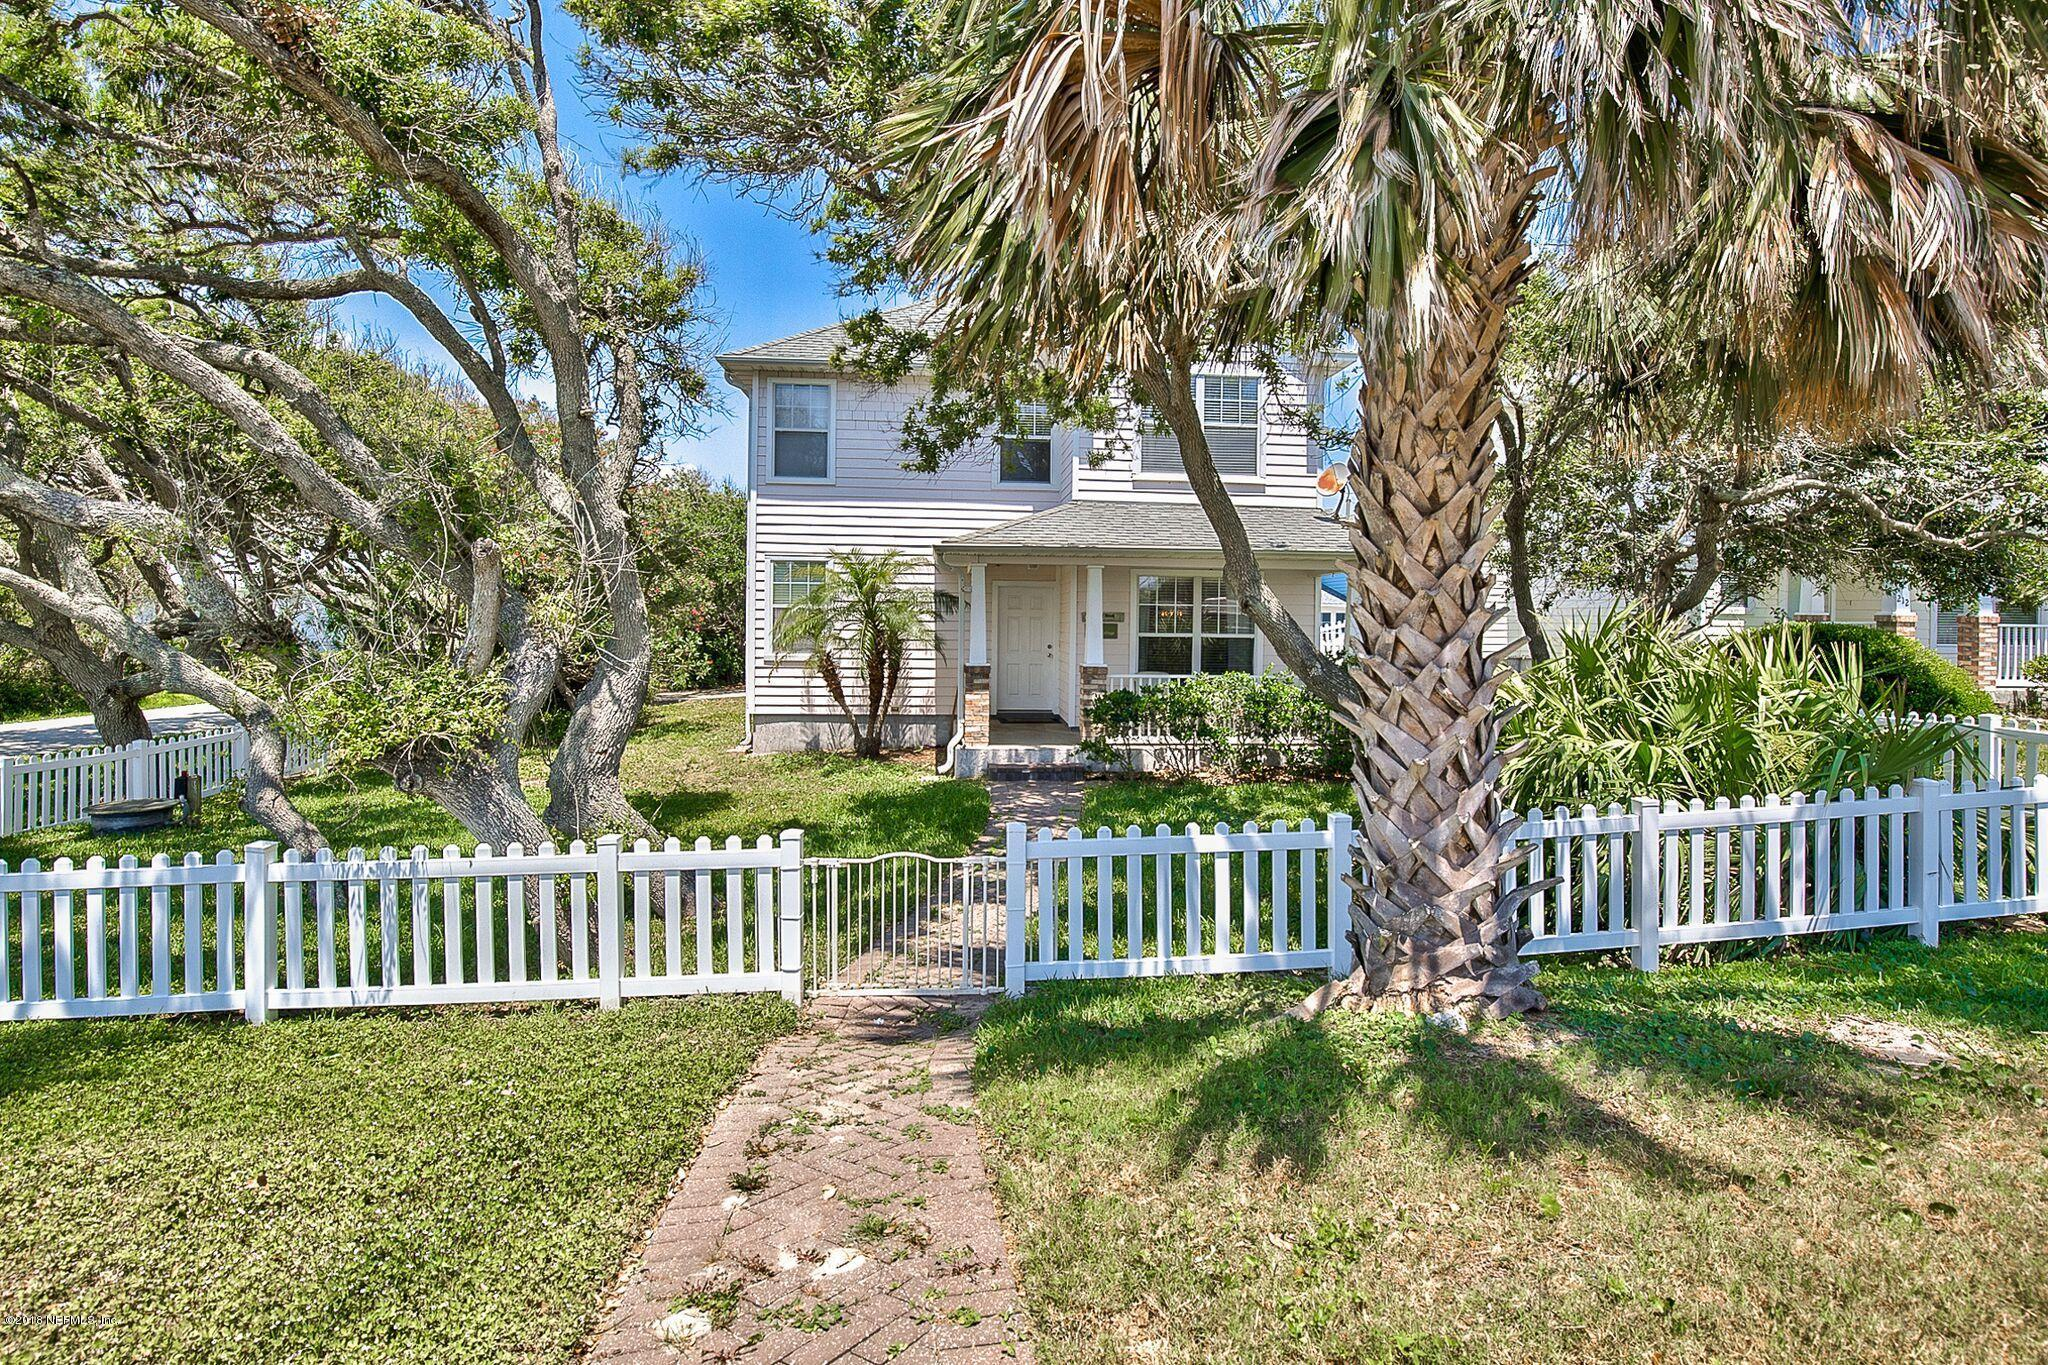 216 BOATING CLUB, ST AUGUSTINE, FLORIDA 32084, 3 Bedrooms Bedrooms, ,2 BathroomsBathrooms,Residential - single family,For sale,BOATING CLUB,942559